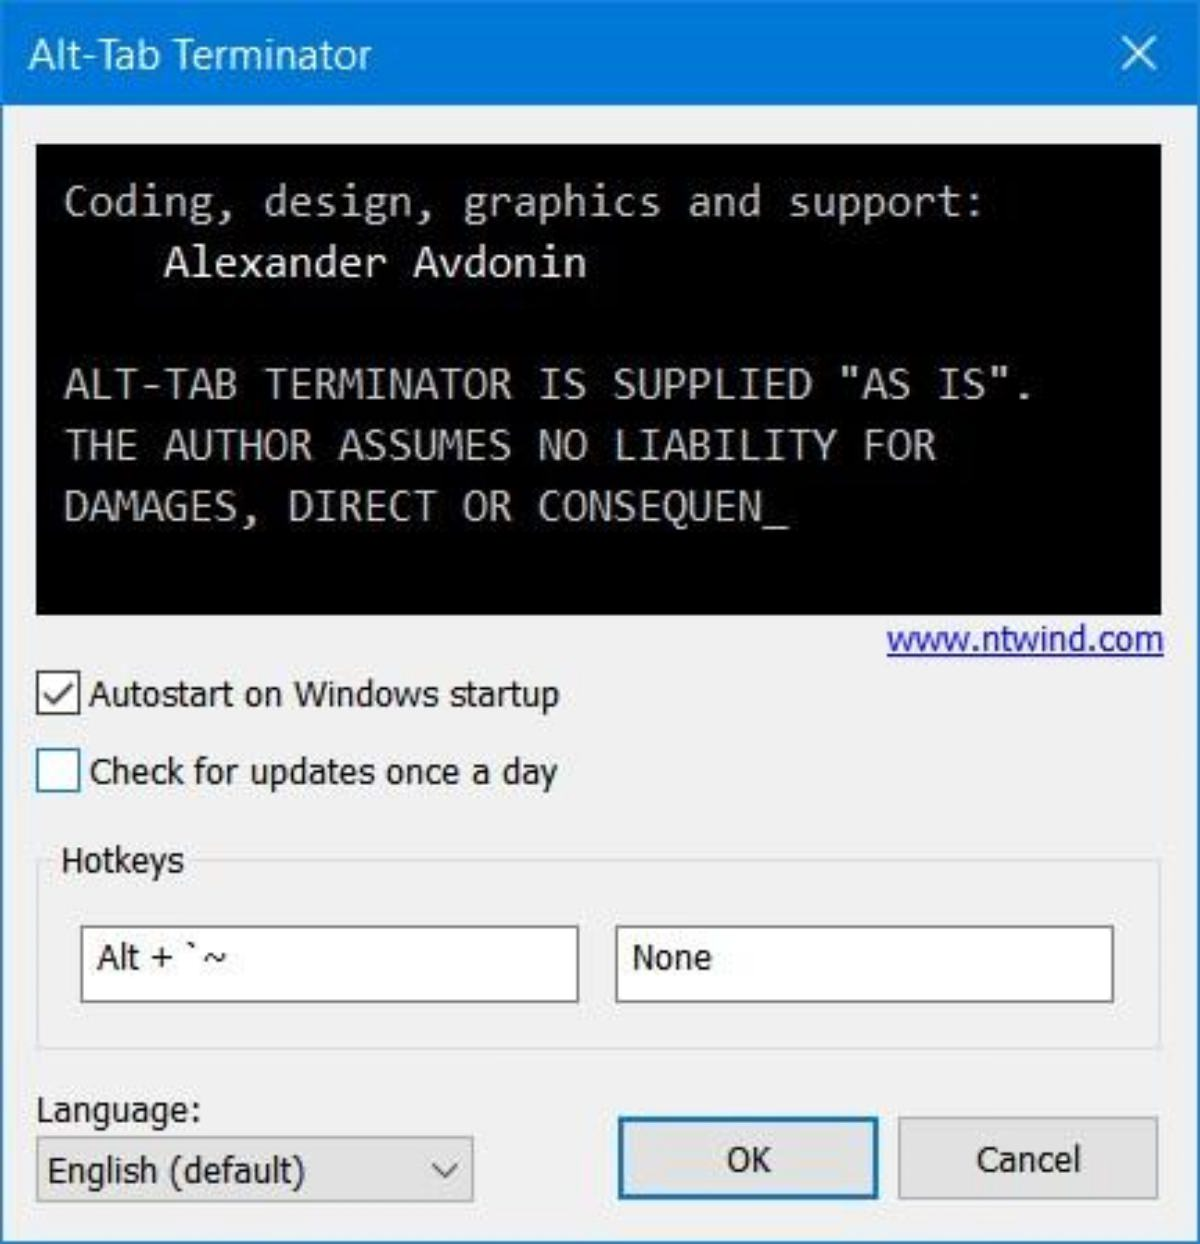 Set hotkeys in Alt-Tab Terminator